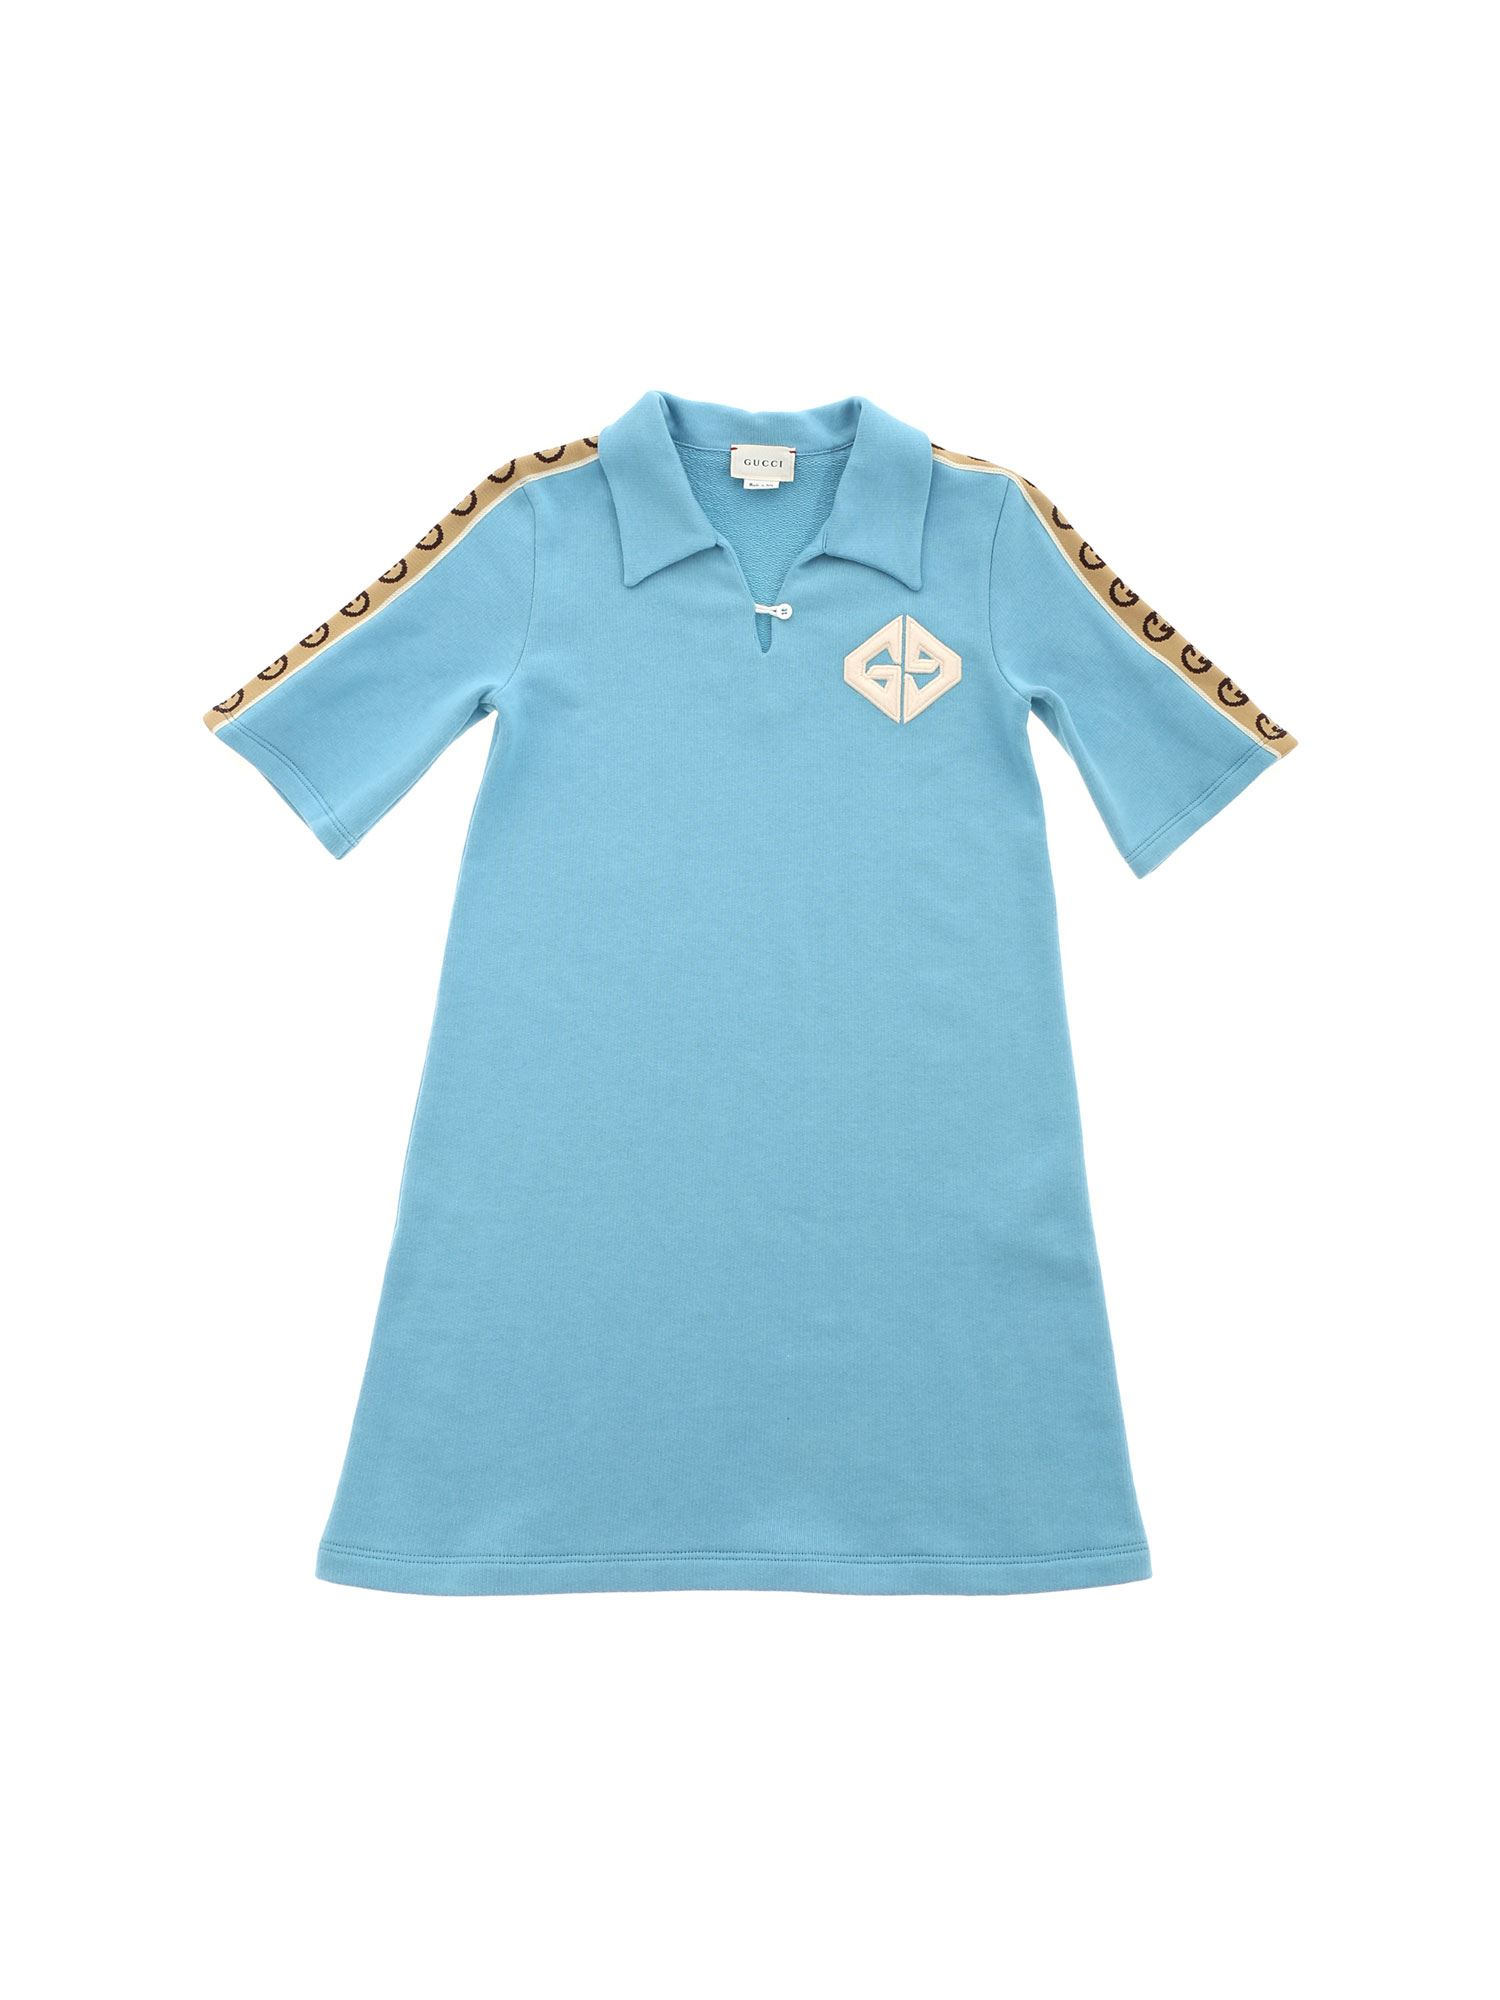 Fendi Jr GG COTTON DRESS IN LIGHT BLUE